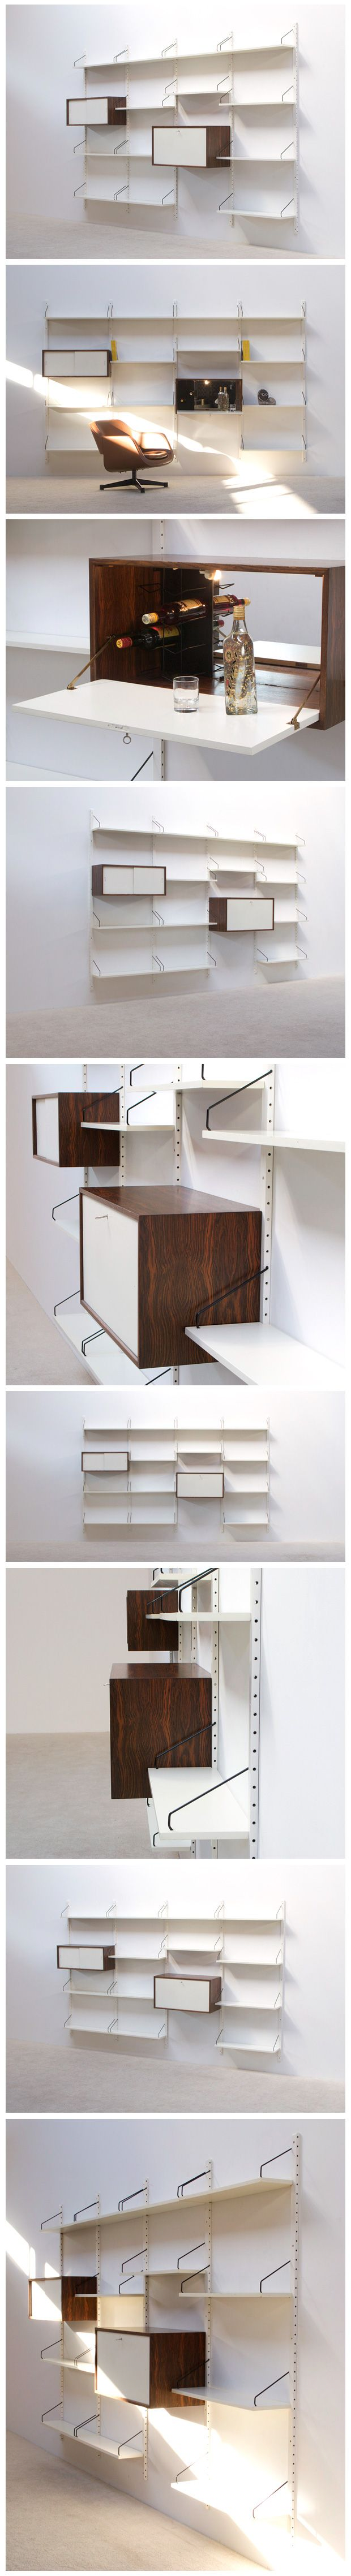 Danish modern off white floating wall unit Designed by Poul Cadovius for Royal System. Multiple shelves (13) and 2 Wenge compartments. 1 compartment with white gliding doors, the other compartment with illuminated mirror and bar integrated for refreshments.